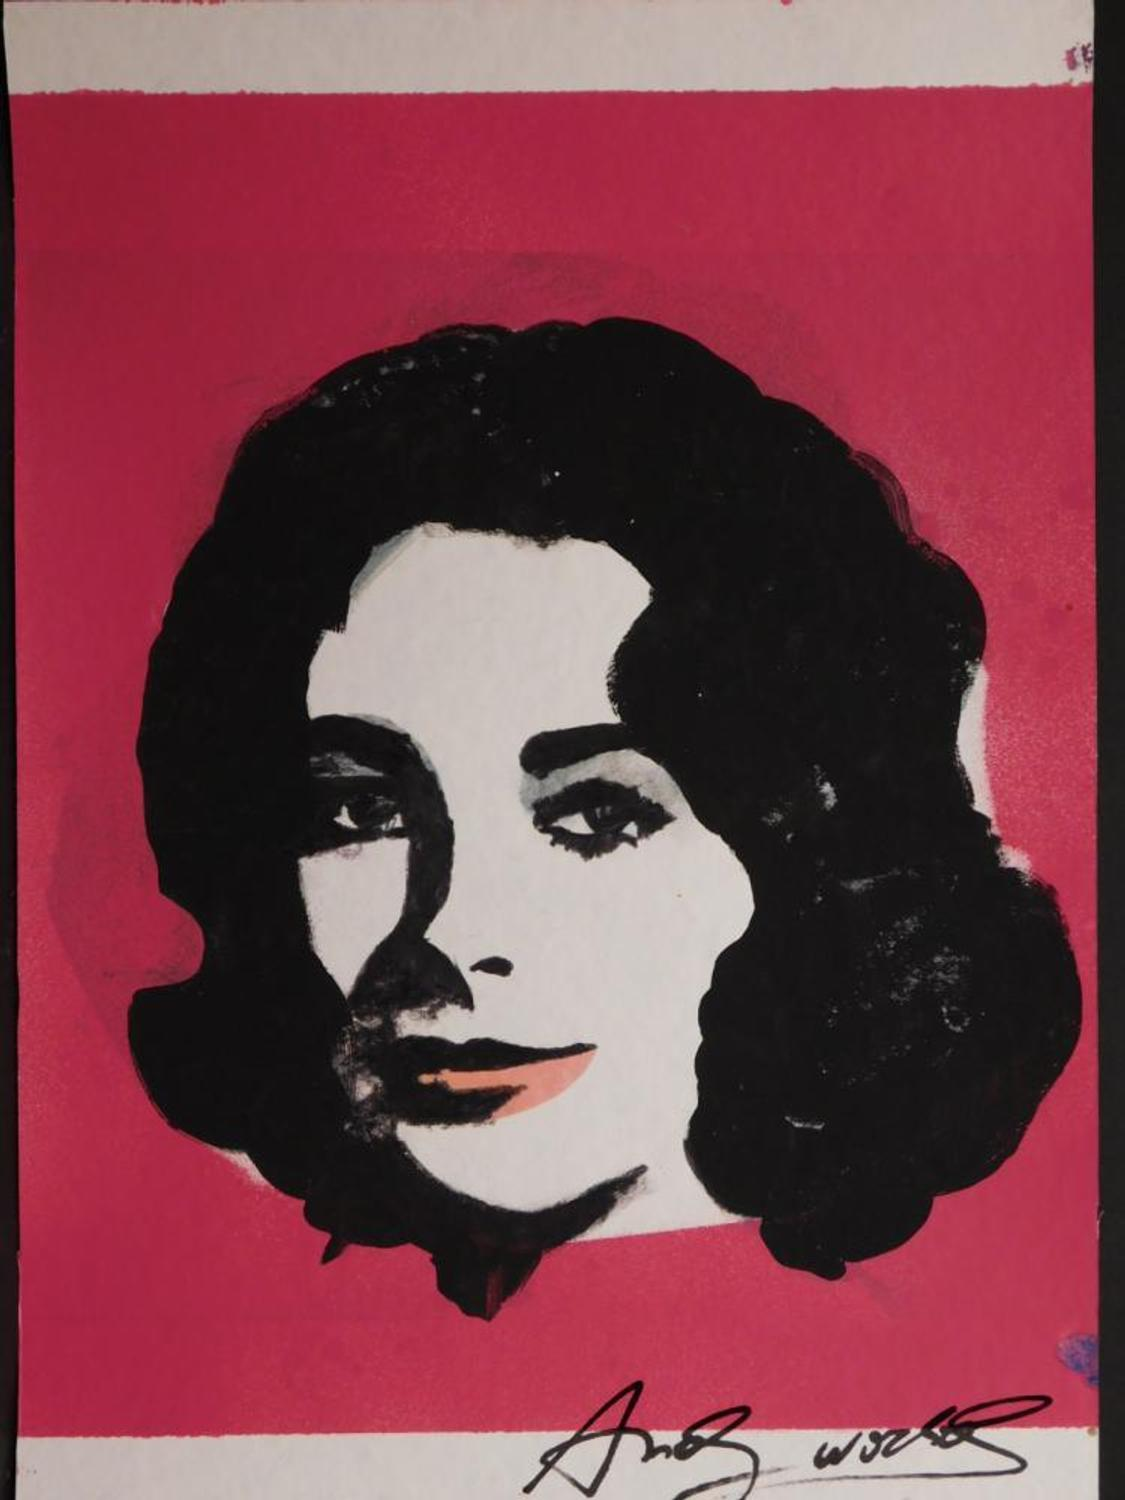 Beautiful Paintings Of Elizabeth Taylor And Other Subjects Attributed To Andy Warhol  Will Be Sold Online,...   Artwire Press Release From ArtfixDaily.com Amazing Pictures